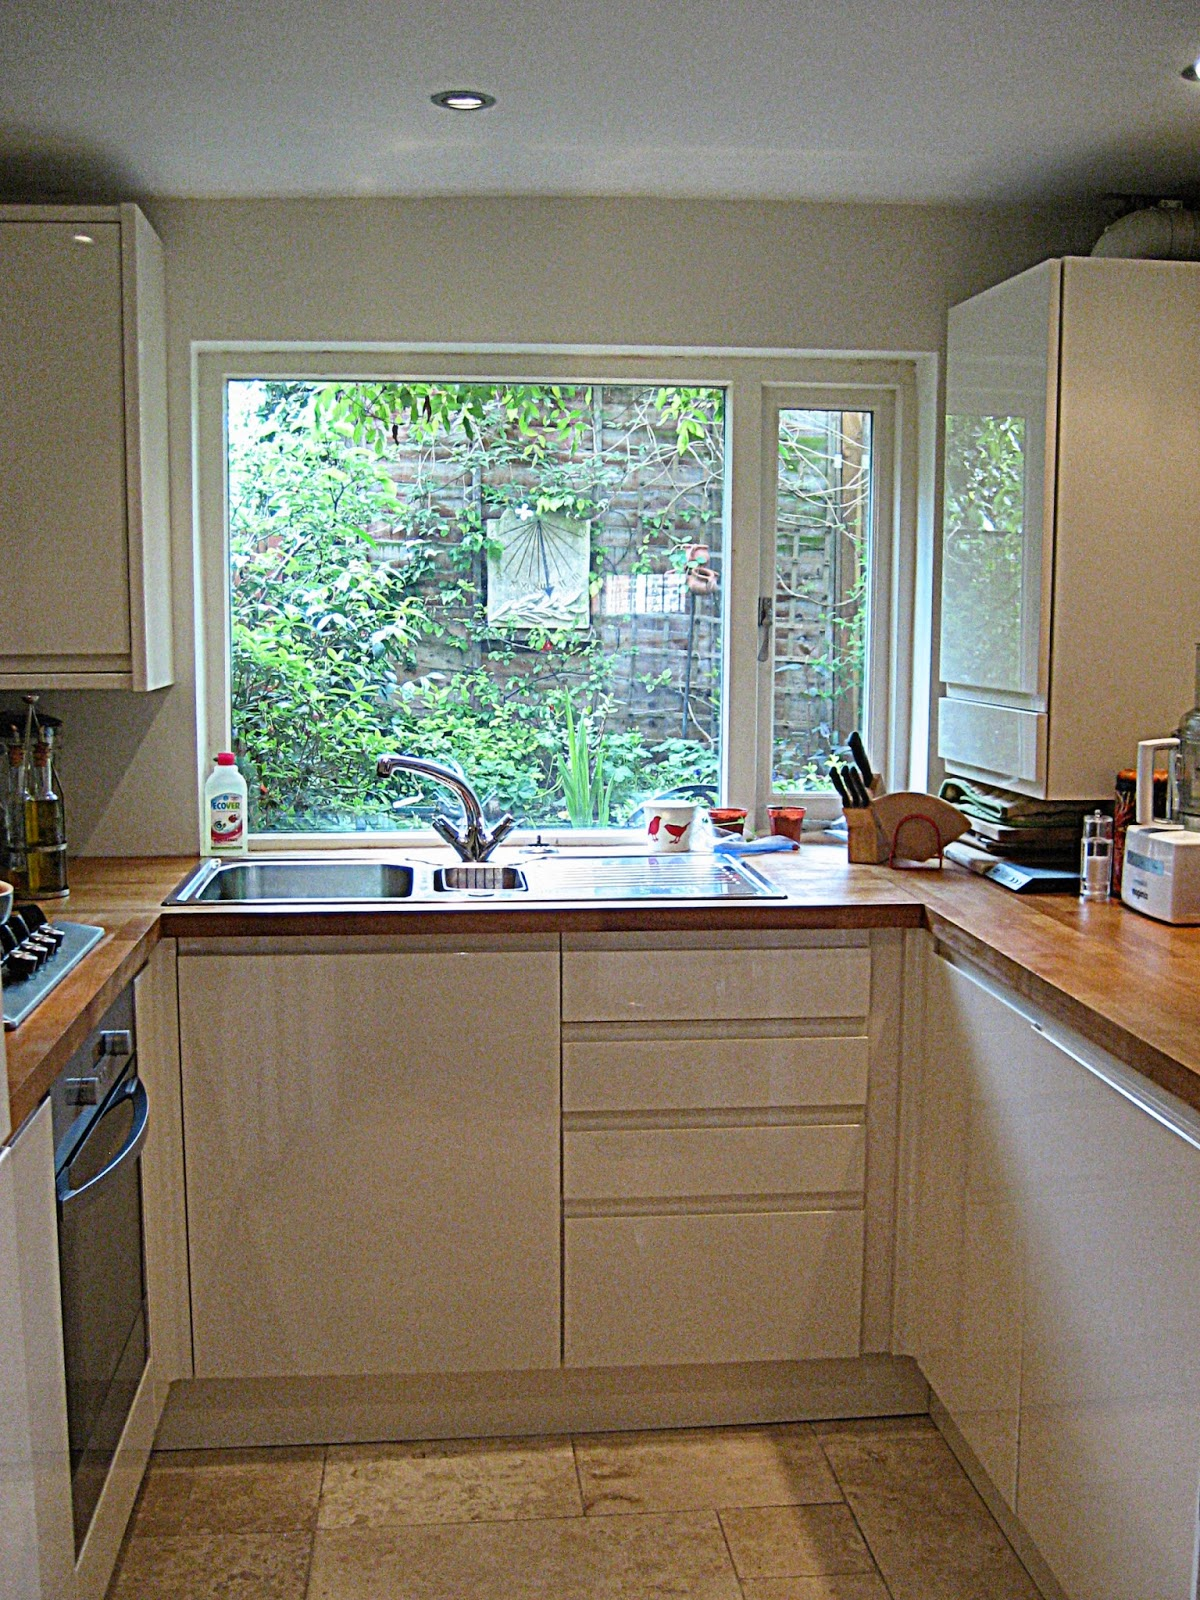 Pebble Soup Seven Things I Learnt About Designing A Small Kitchen